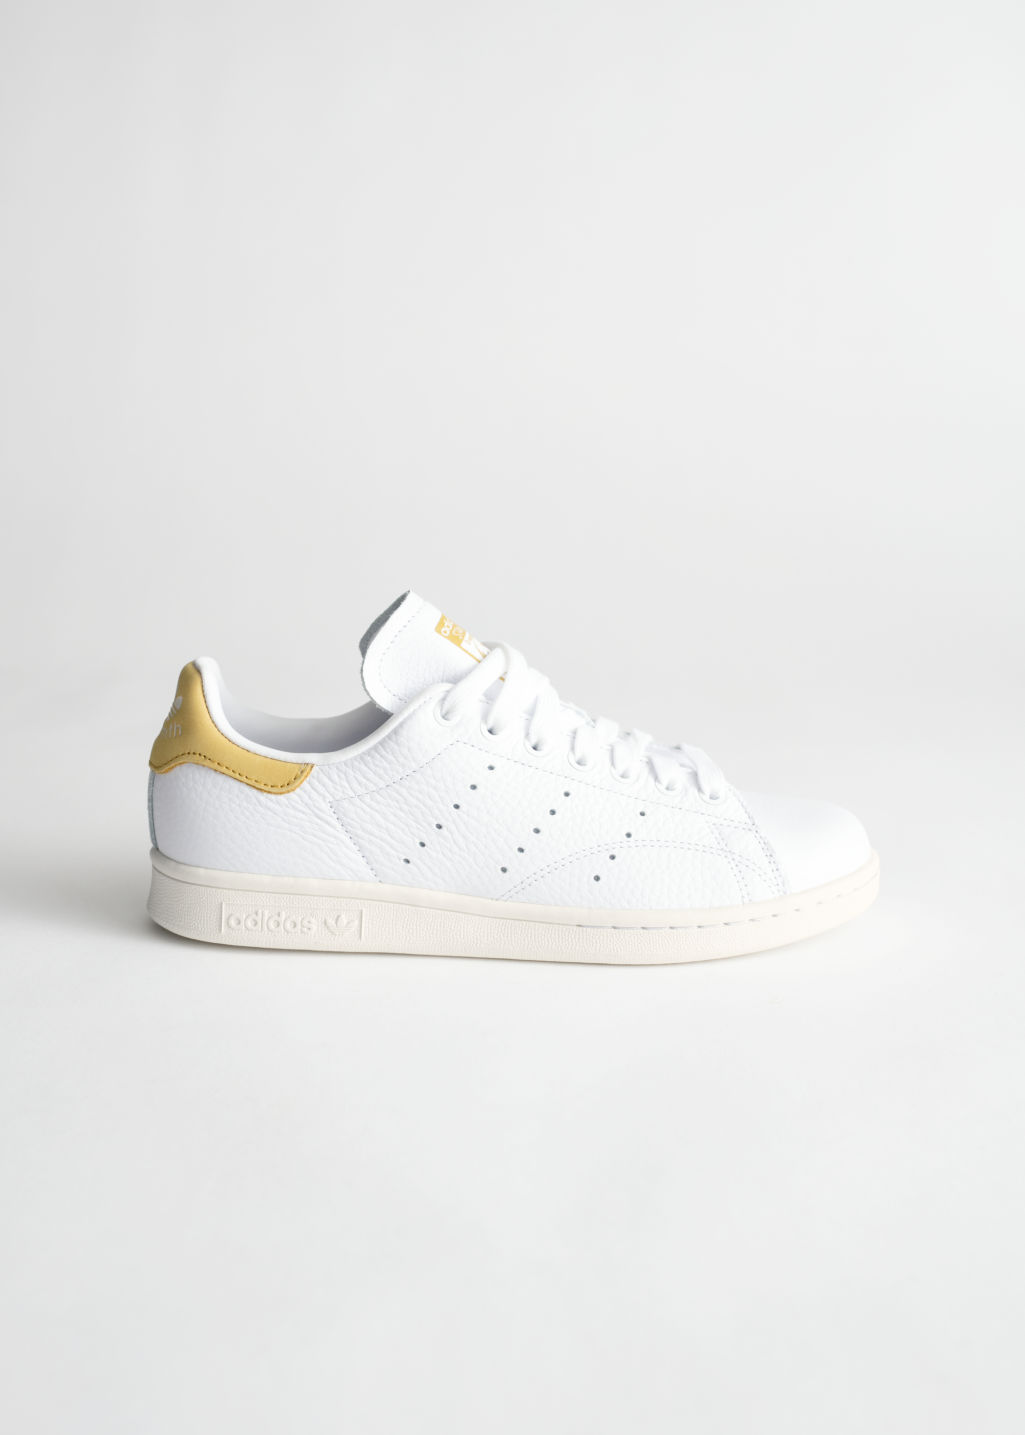 Royaume-Uni disponibilité 5d917 758e8 adidas Stan Smith - White - Adidas - & Other Stories